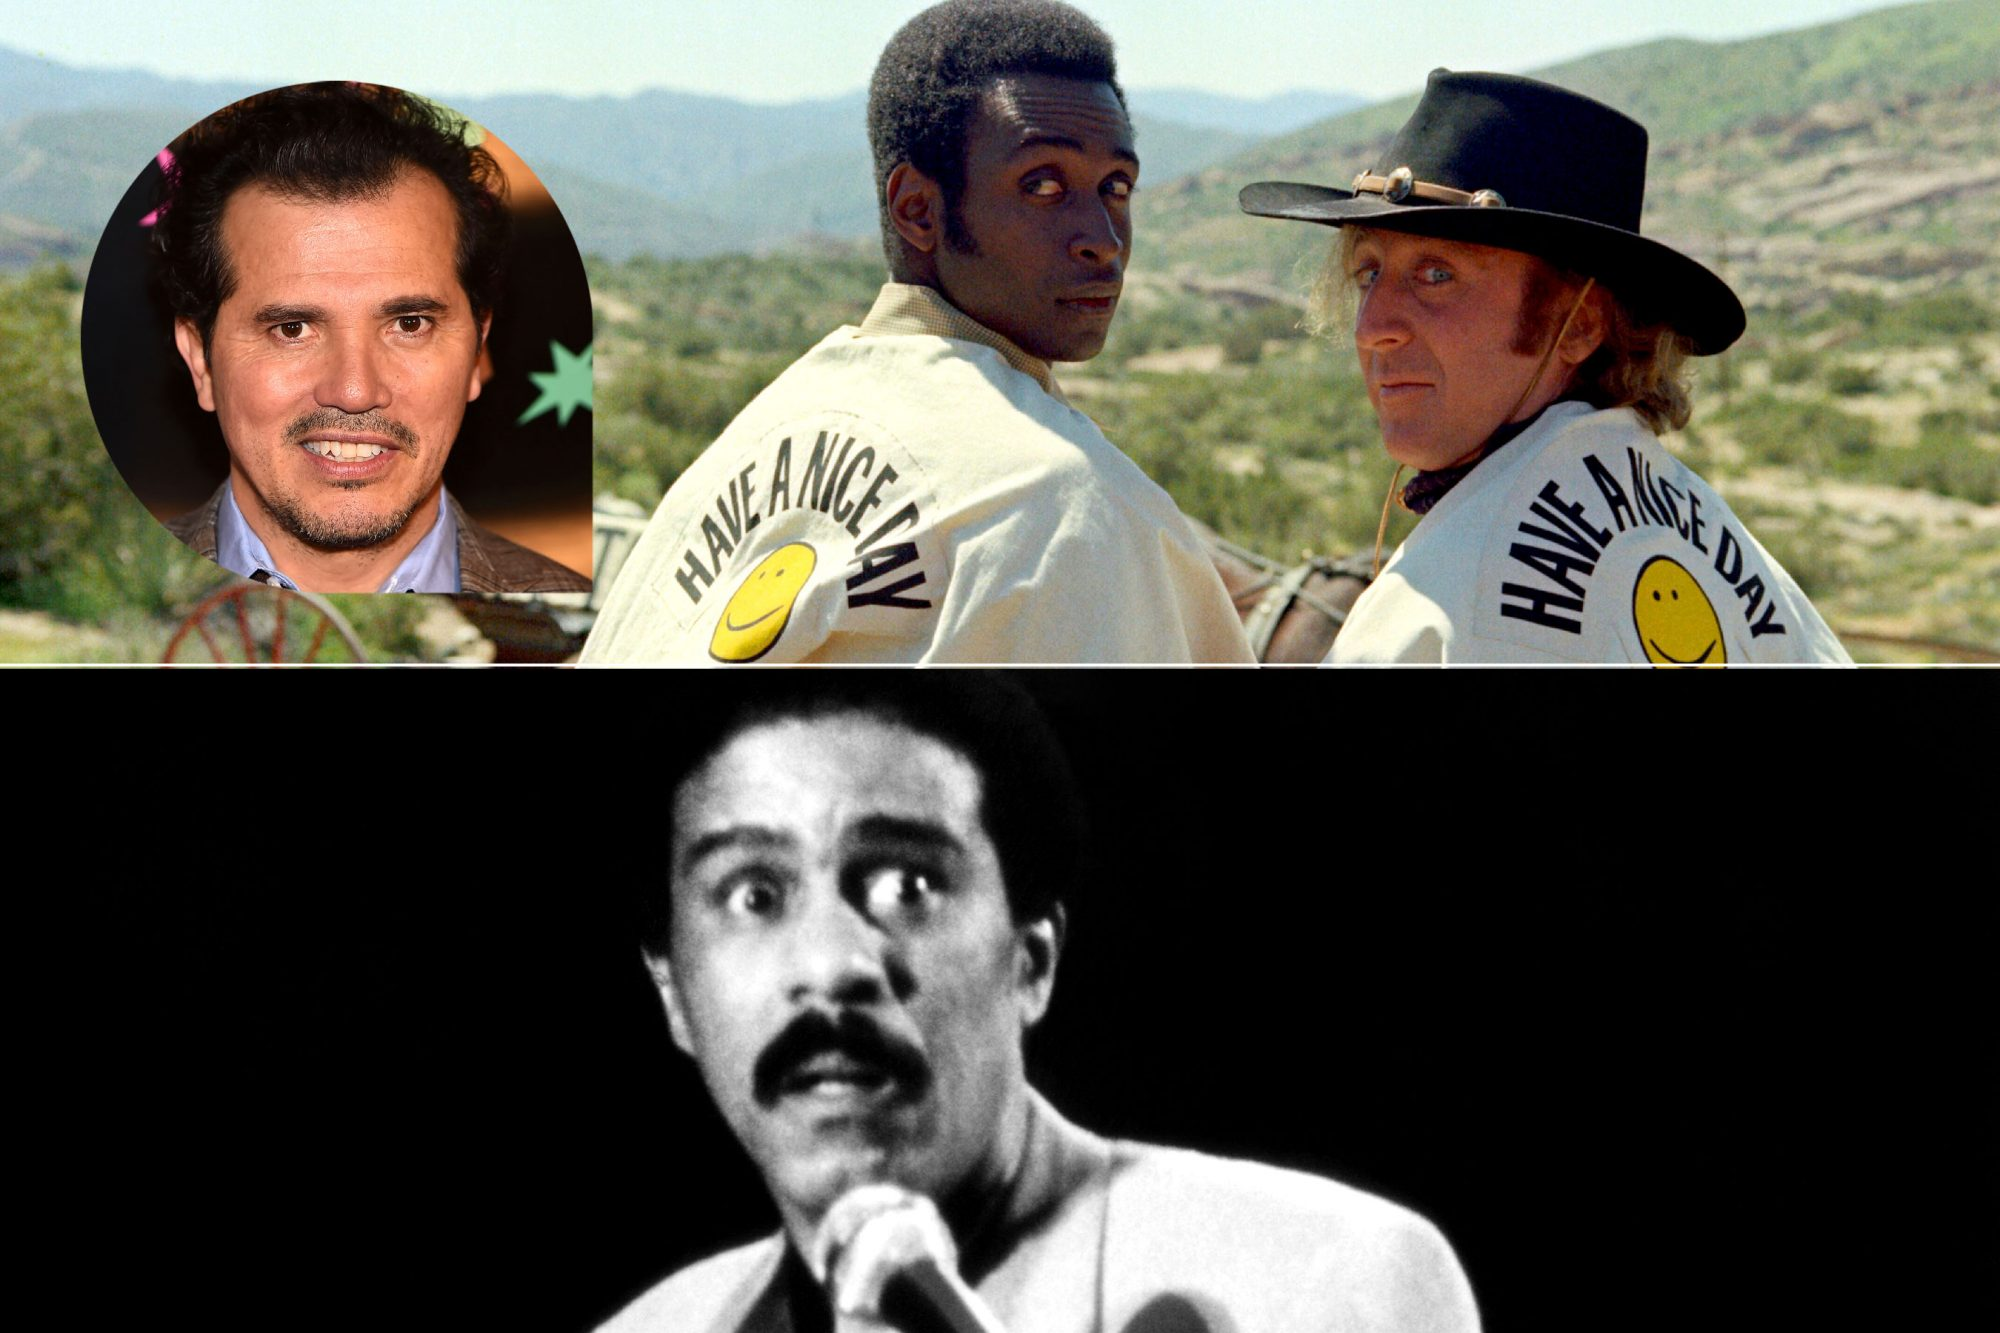 John Leguizamo | Blazing Saddles & Richard Pryor: Live in Concert